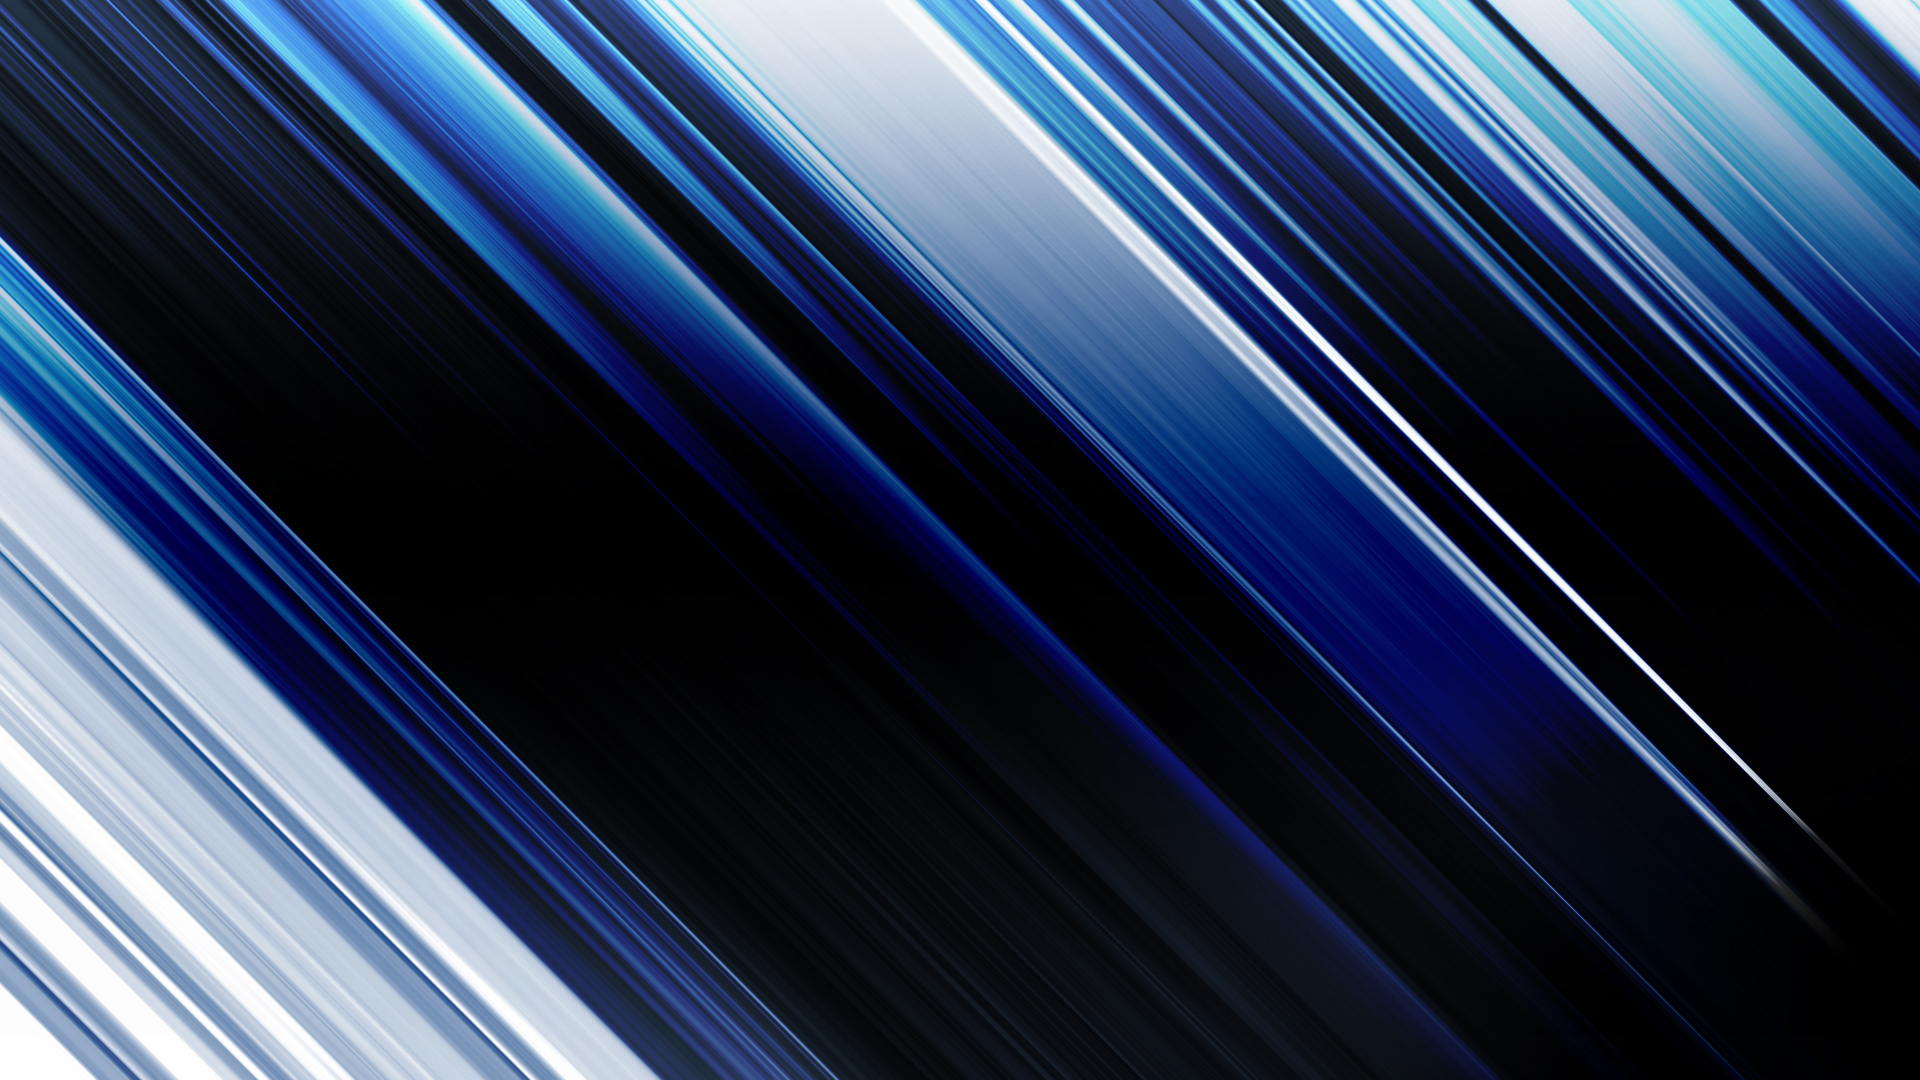 Abstract Wallpaper Blue wallpaper   732310 1920x1080